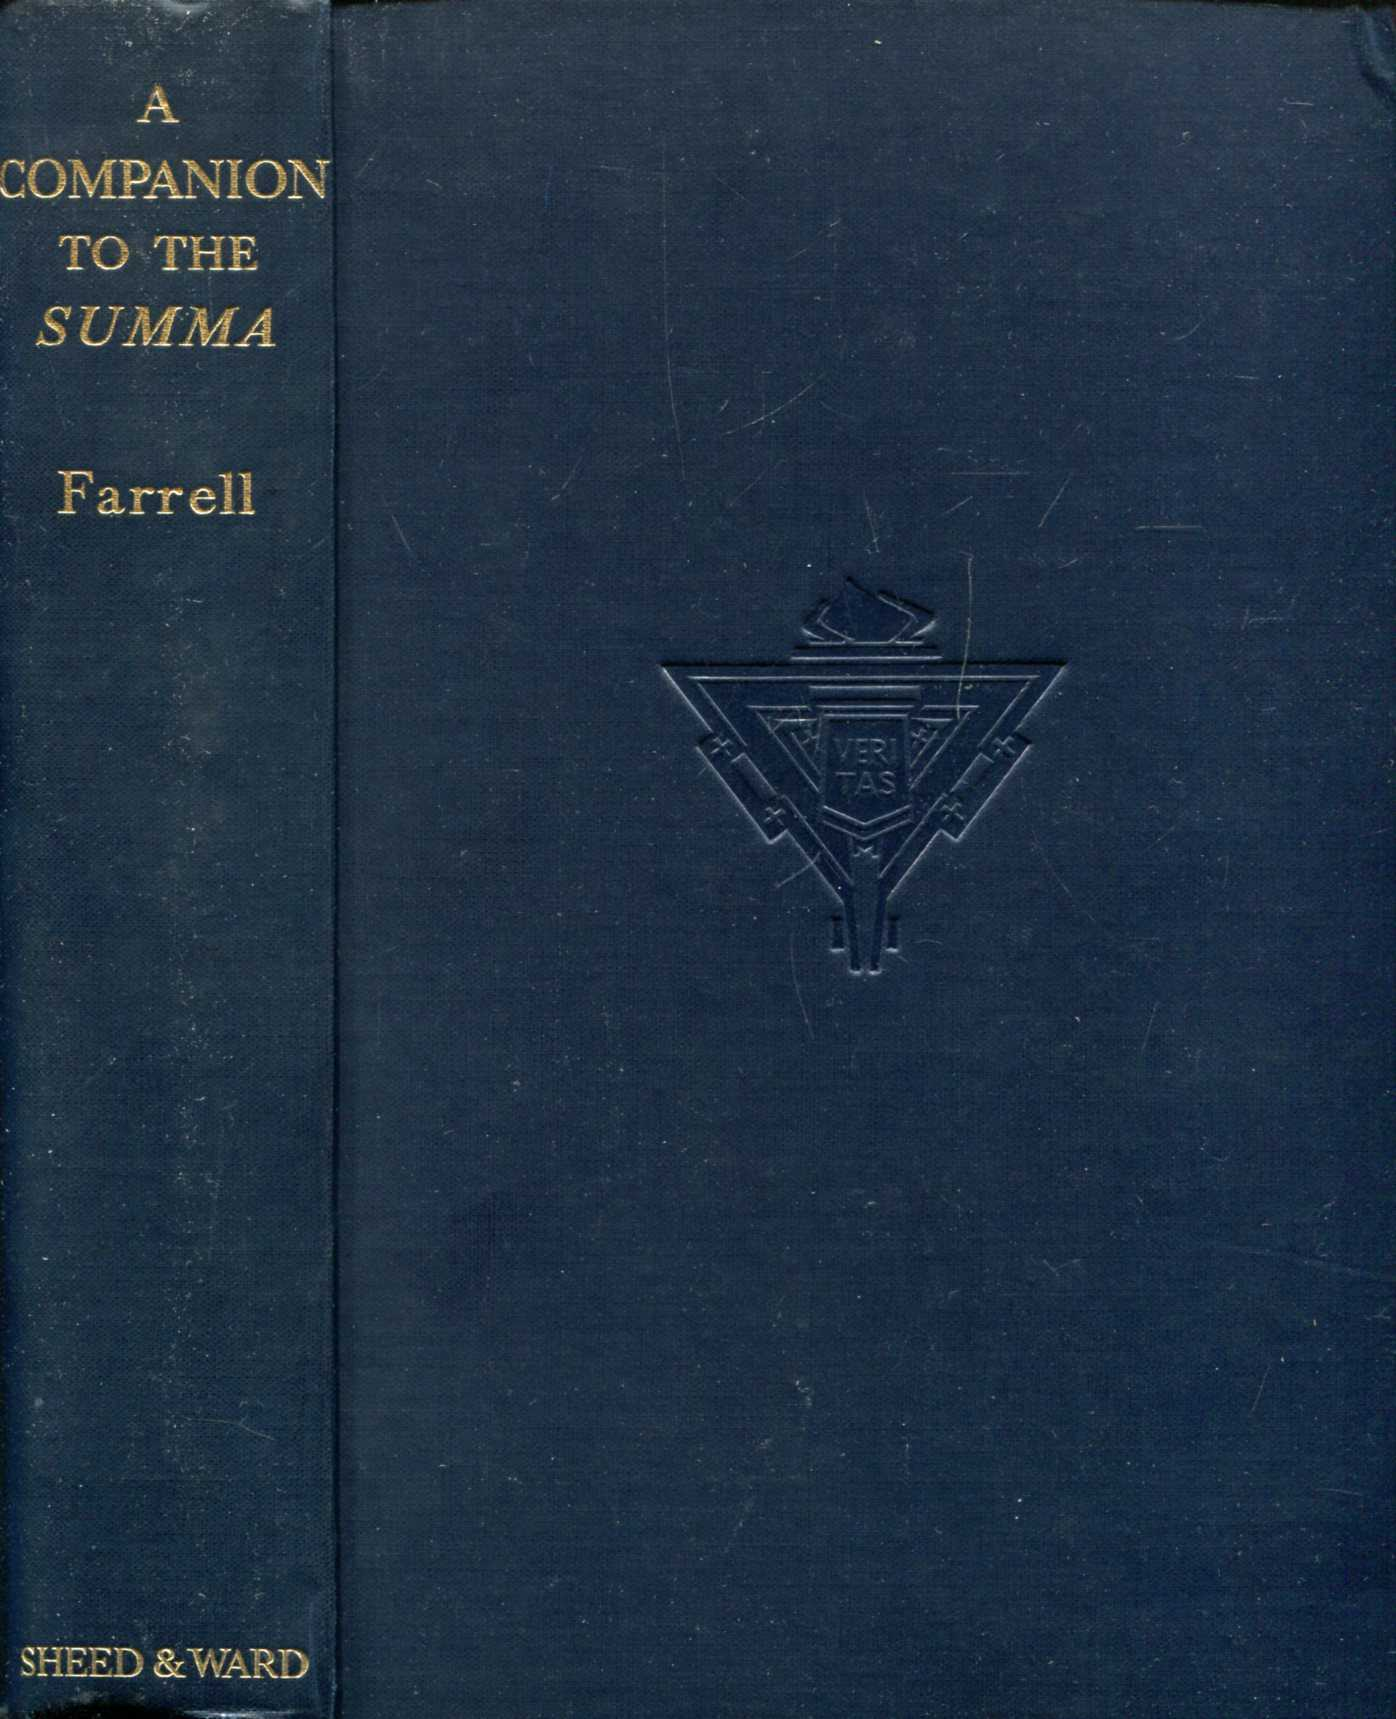 Image for A Companion to the Summa : volume II - The Pursuit of Happiness (corresponding to the Summa Theologica IA IIAE)